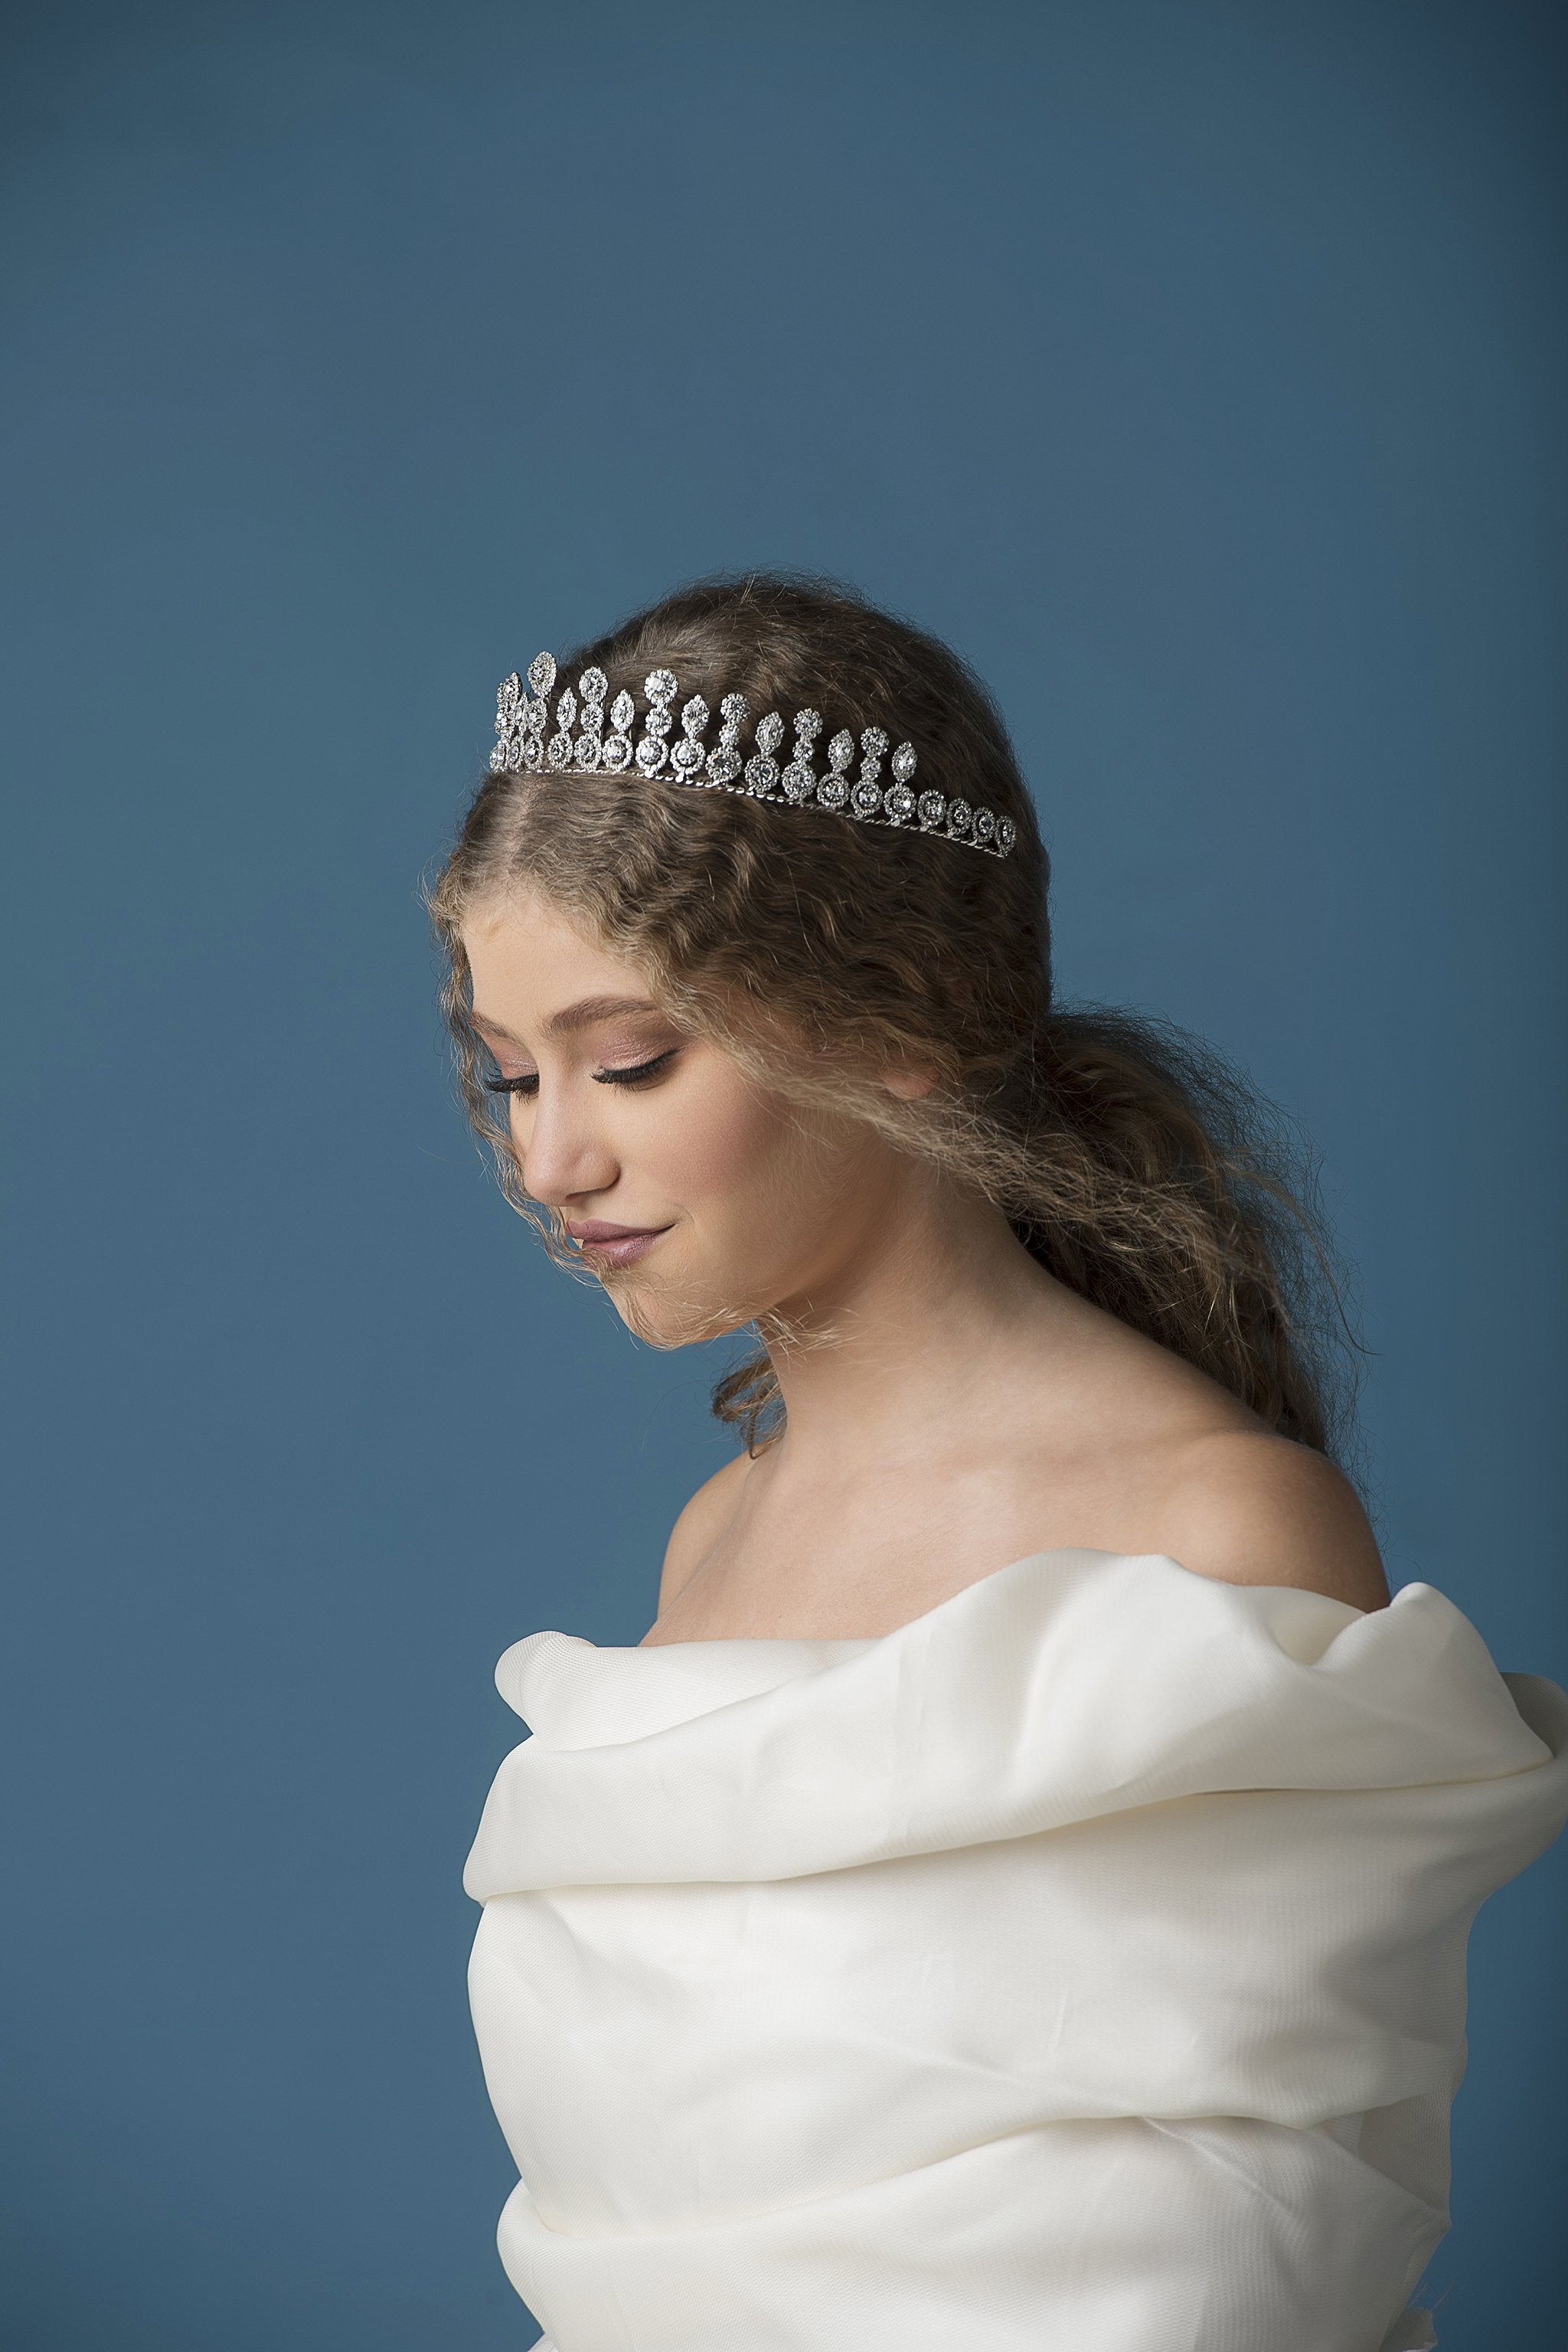 Wedding Inspiration - Headpiece - Crown - Tiara - Swarovski - Bridal Look - Accessories